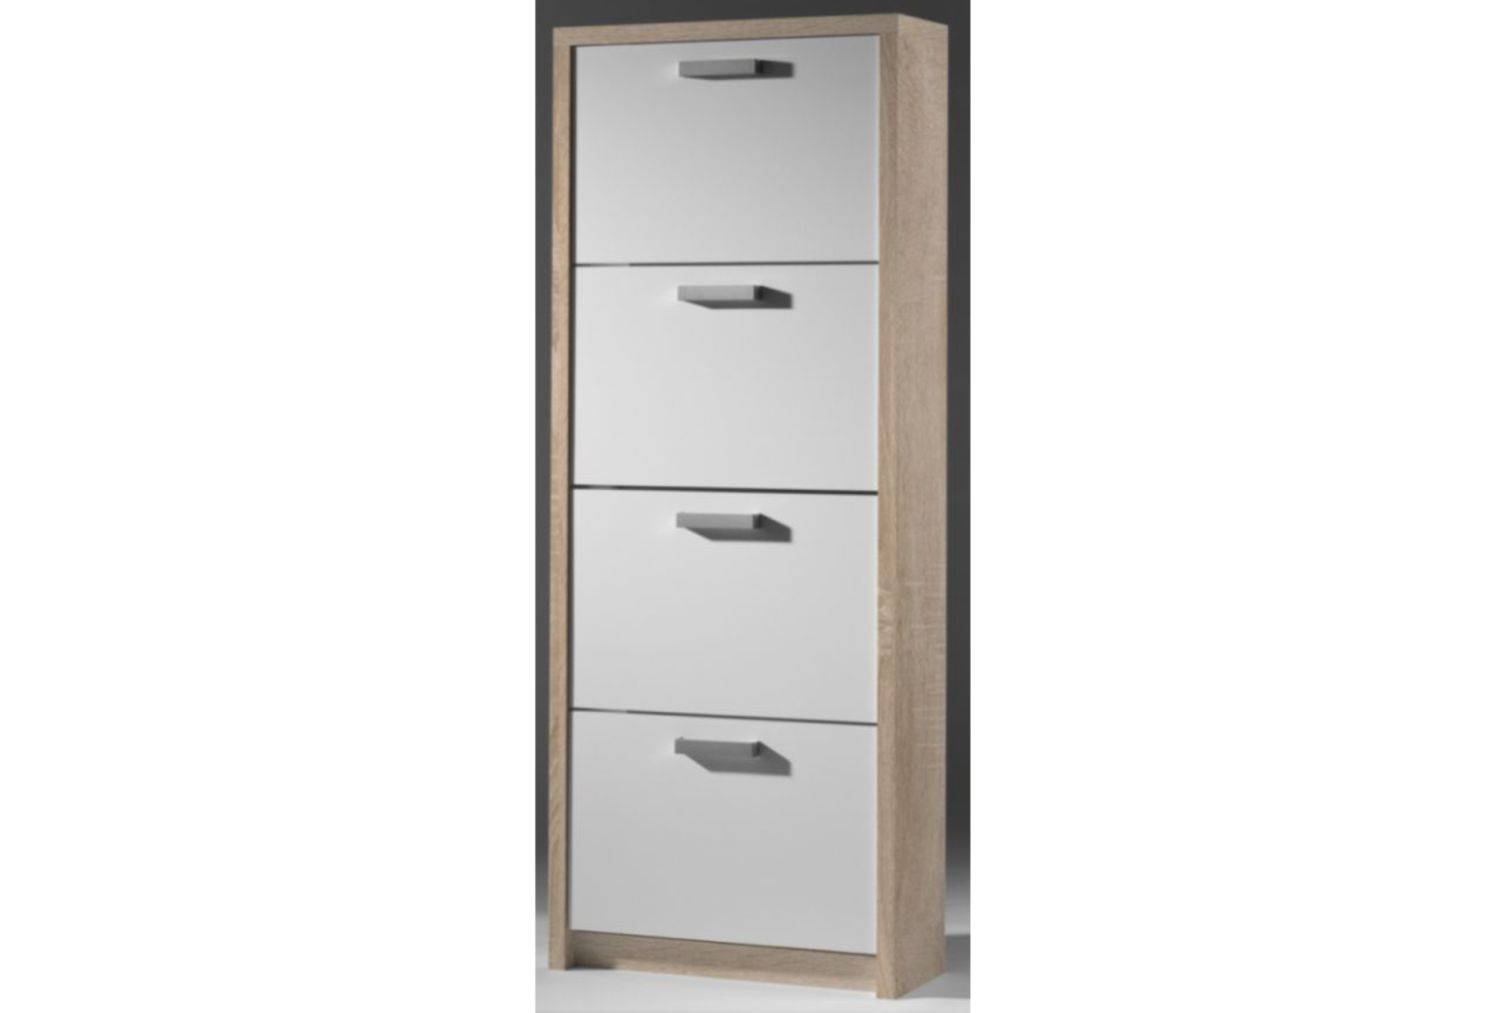 schuhschrank weiss aktuell schuhkipper schuhregal klappenschrank neu kommode ebay. Black Bedroom Furniture Sets. Home Design Ideas